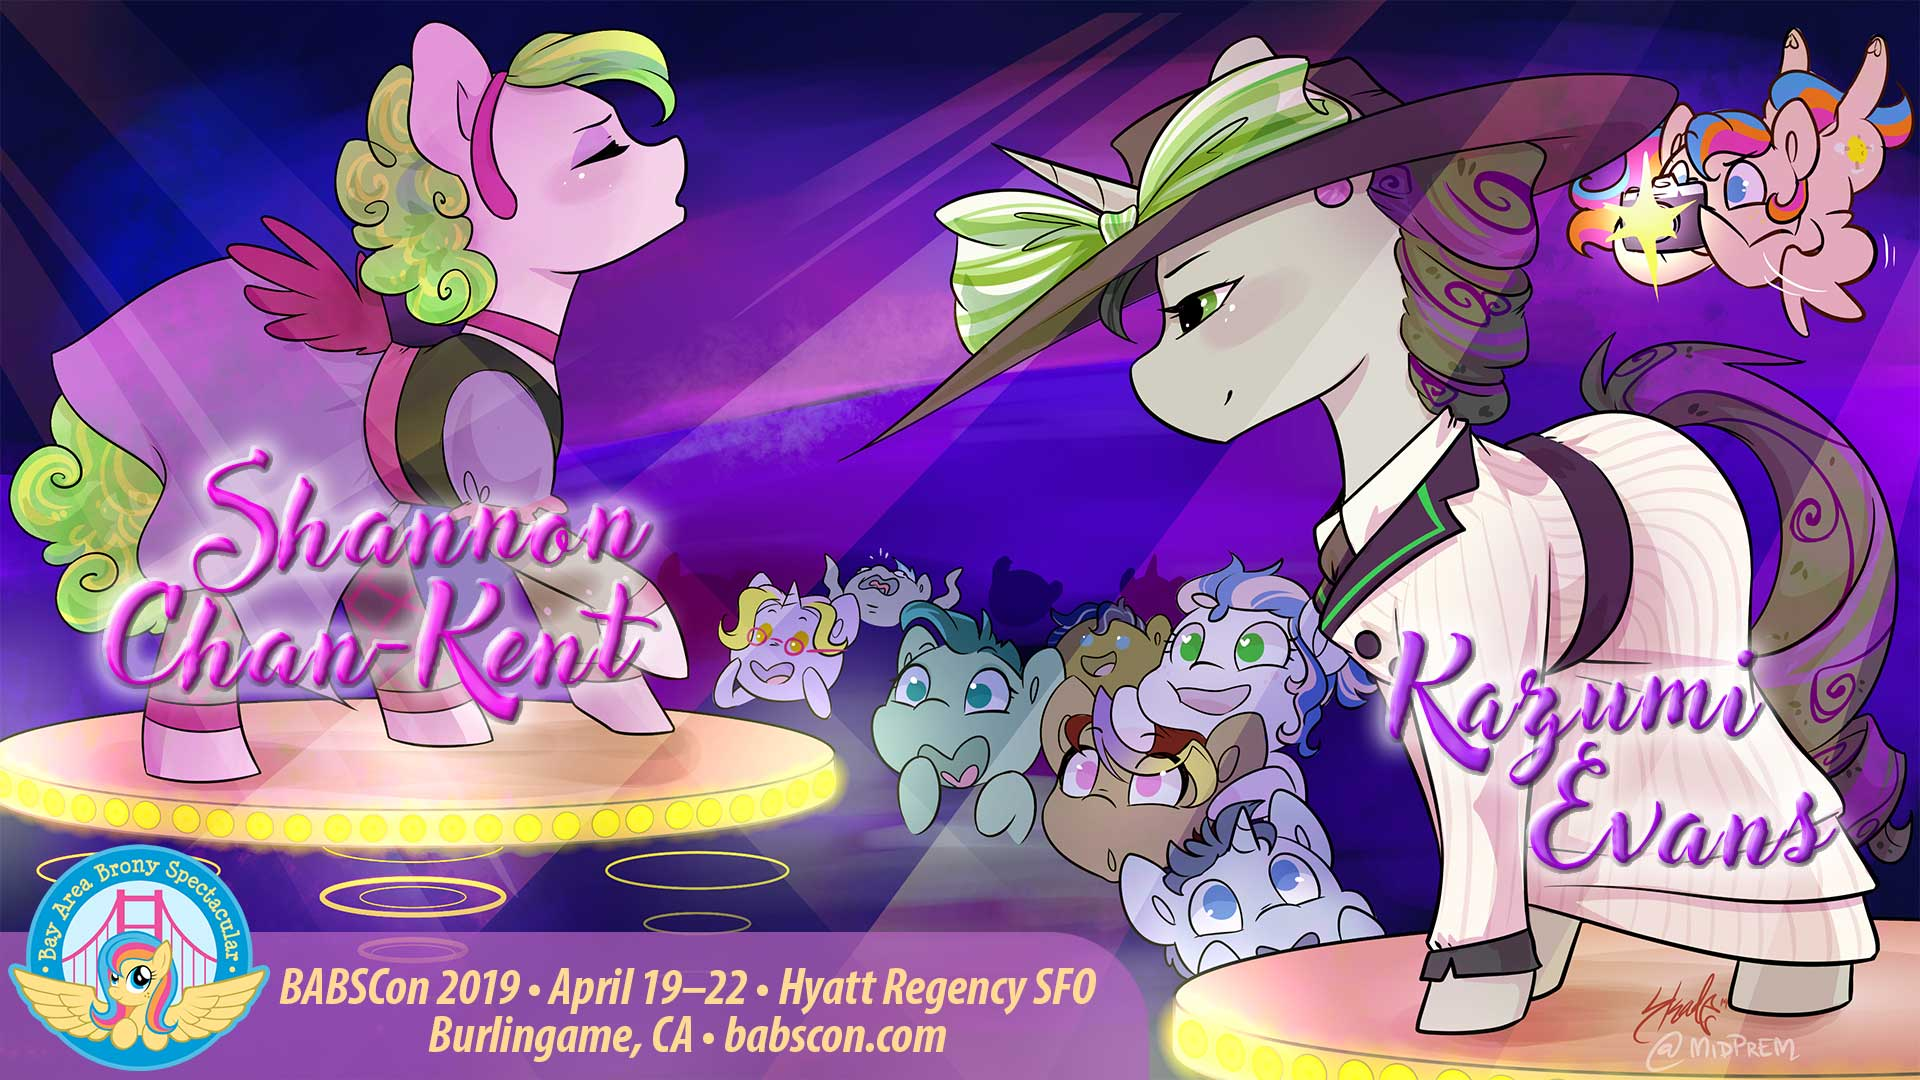 BABSCon Sings Sweet Harmony With Kazumi Evans and Shannon Chan-Kent